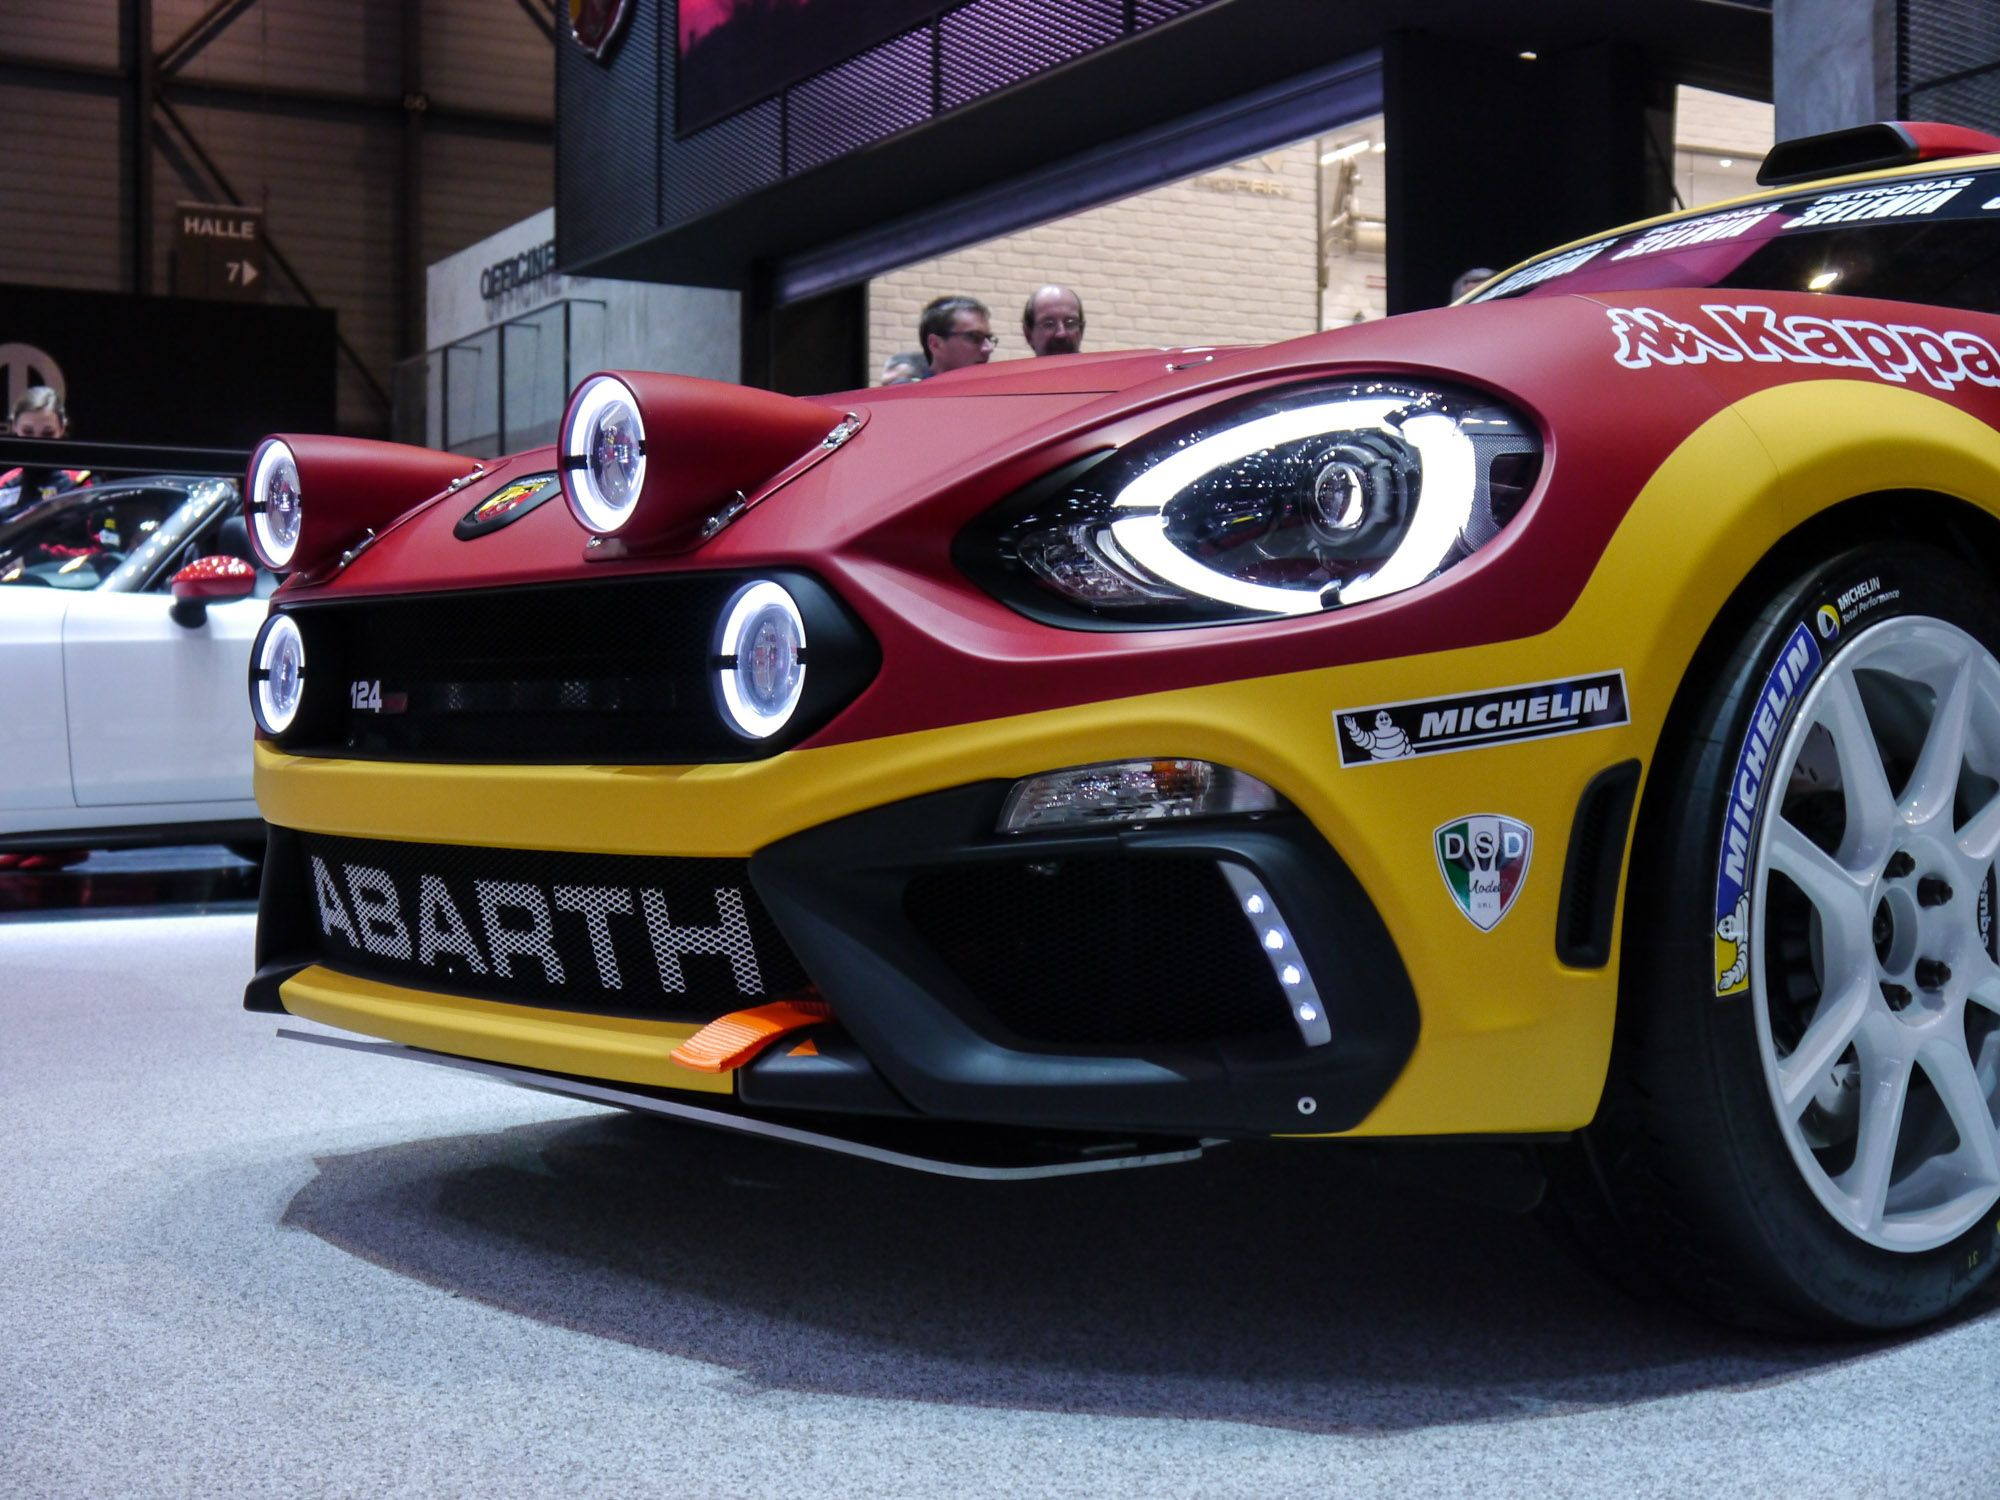 Fiat 124 Abarth Rally Fiat 124 Pinterest Fiat Cars And Rally